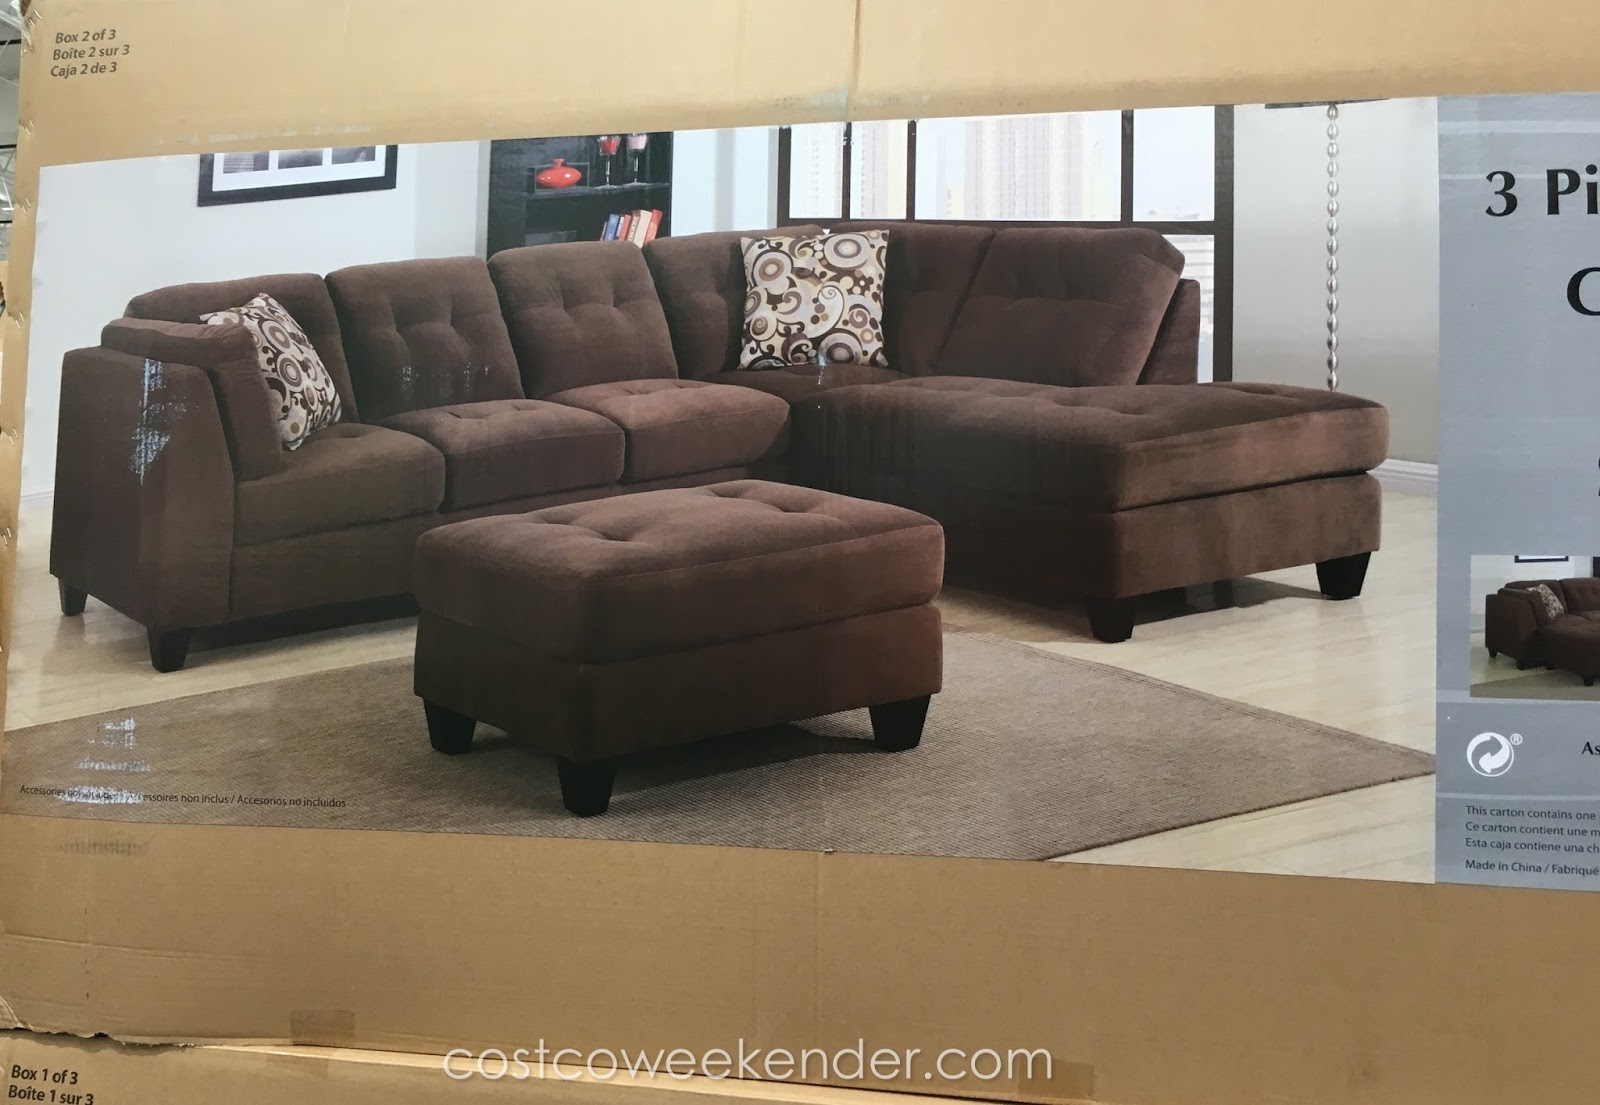 Mstar 3 Piece Modular Fabric Sectional With Ottoman